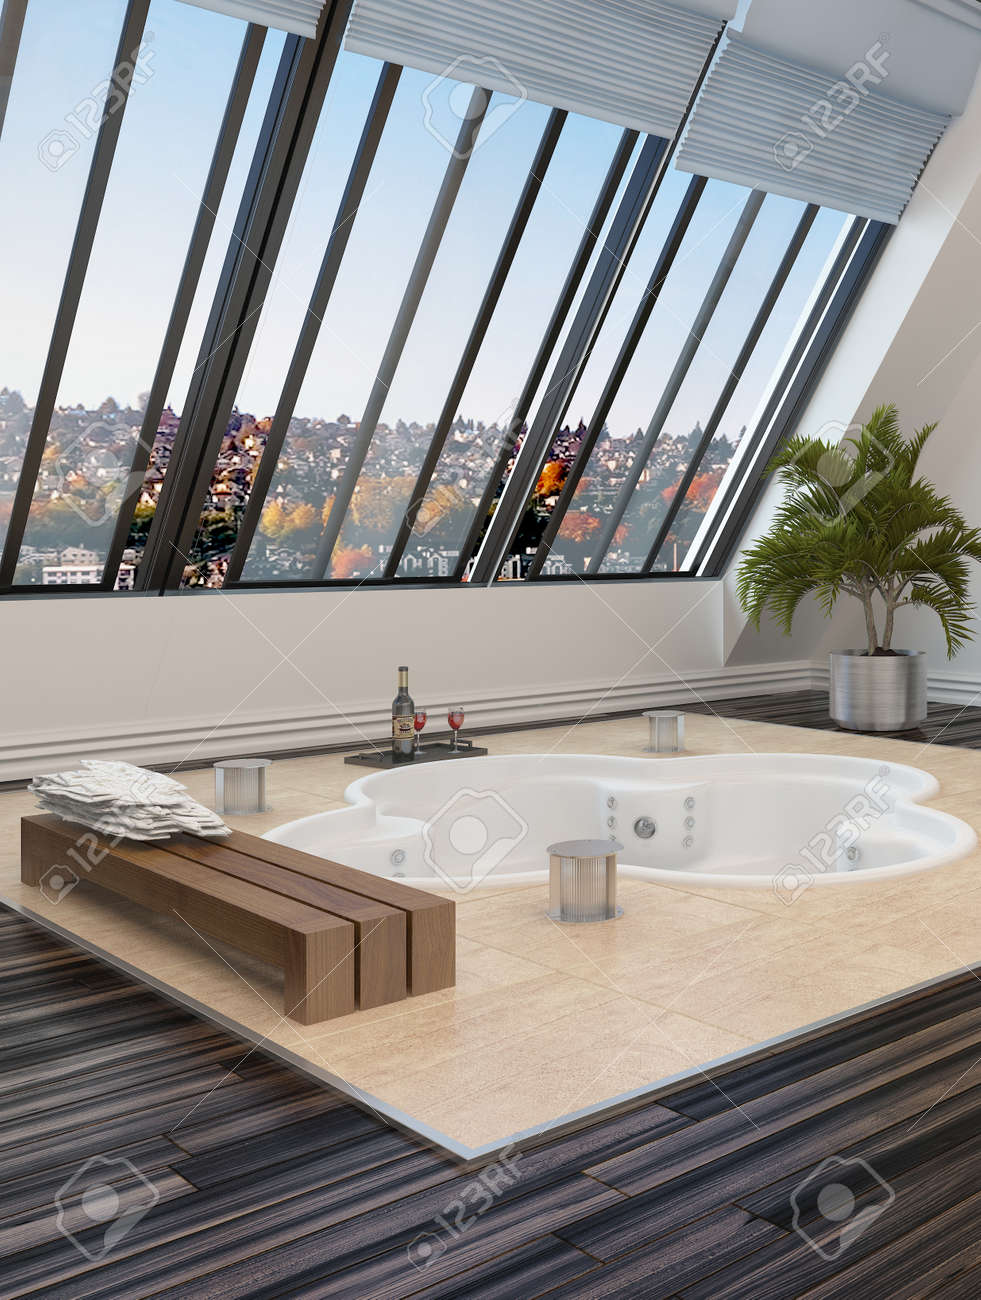 sunken trefoil shaped hot tub or spa bath in a modern bathroom overlooked by large sloping